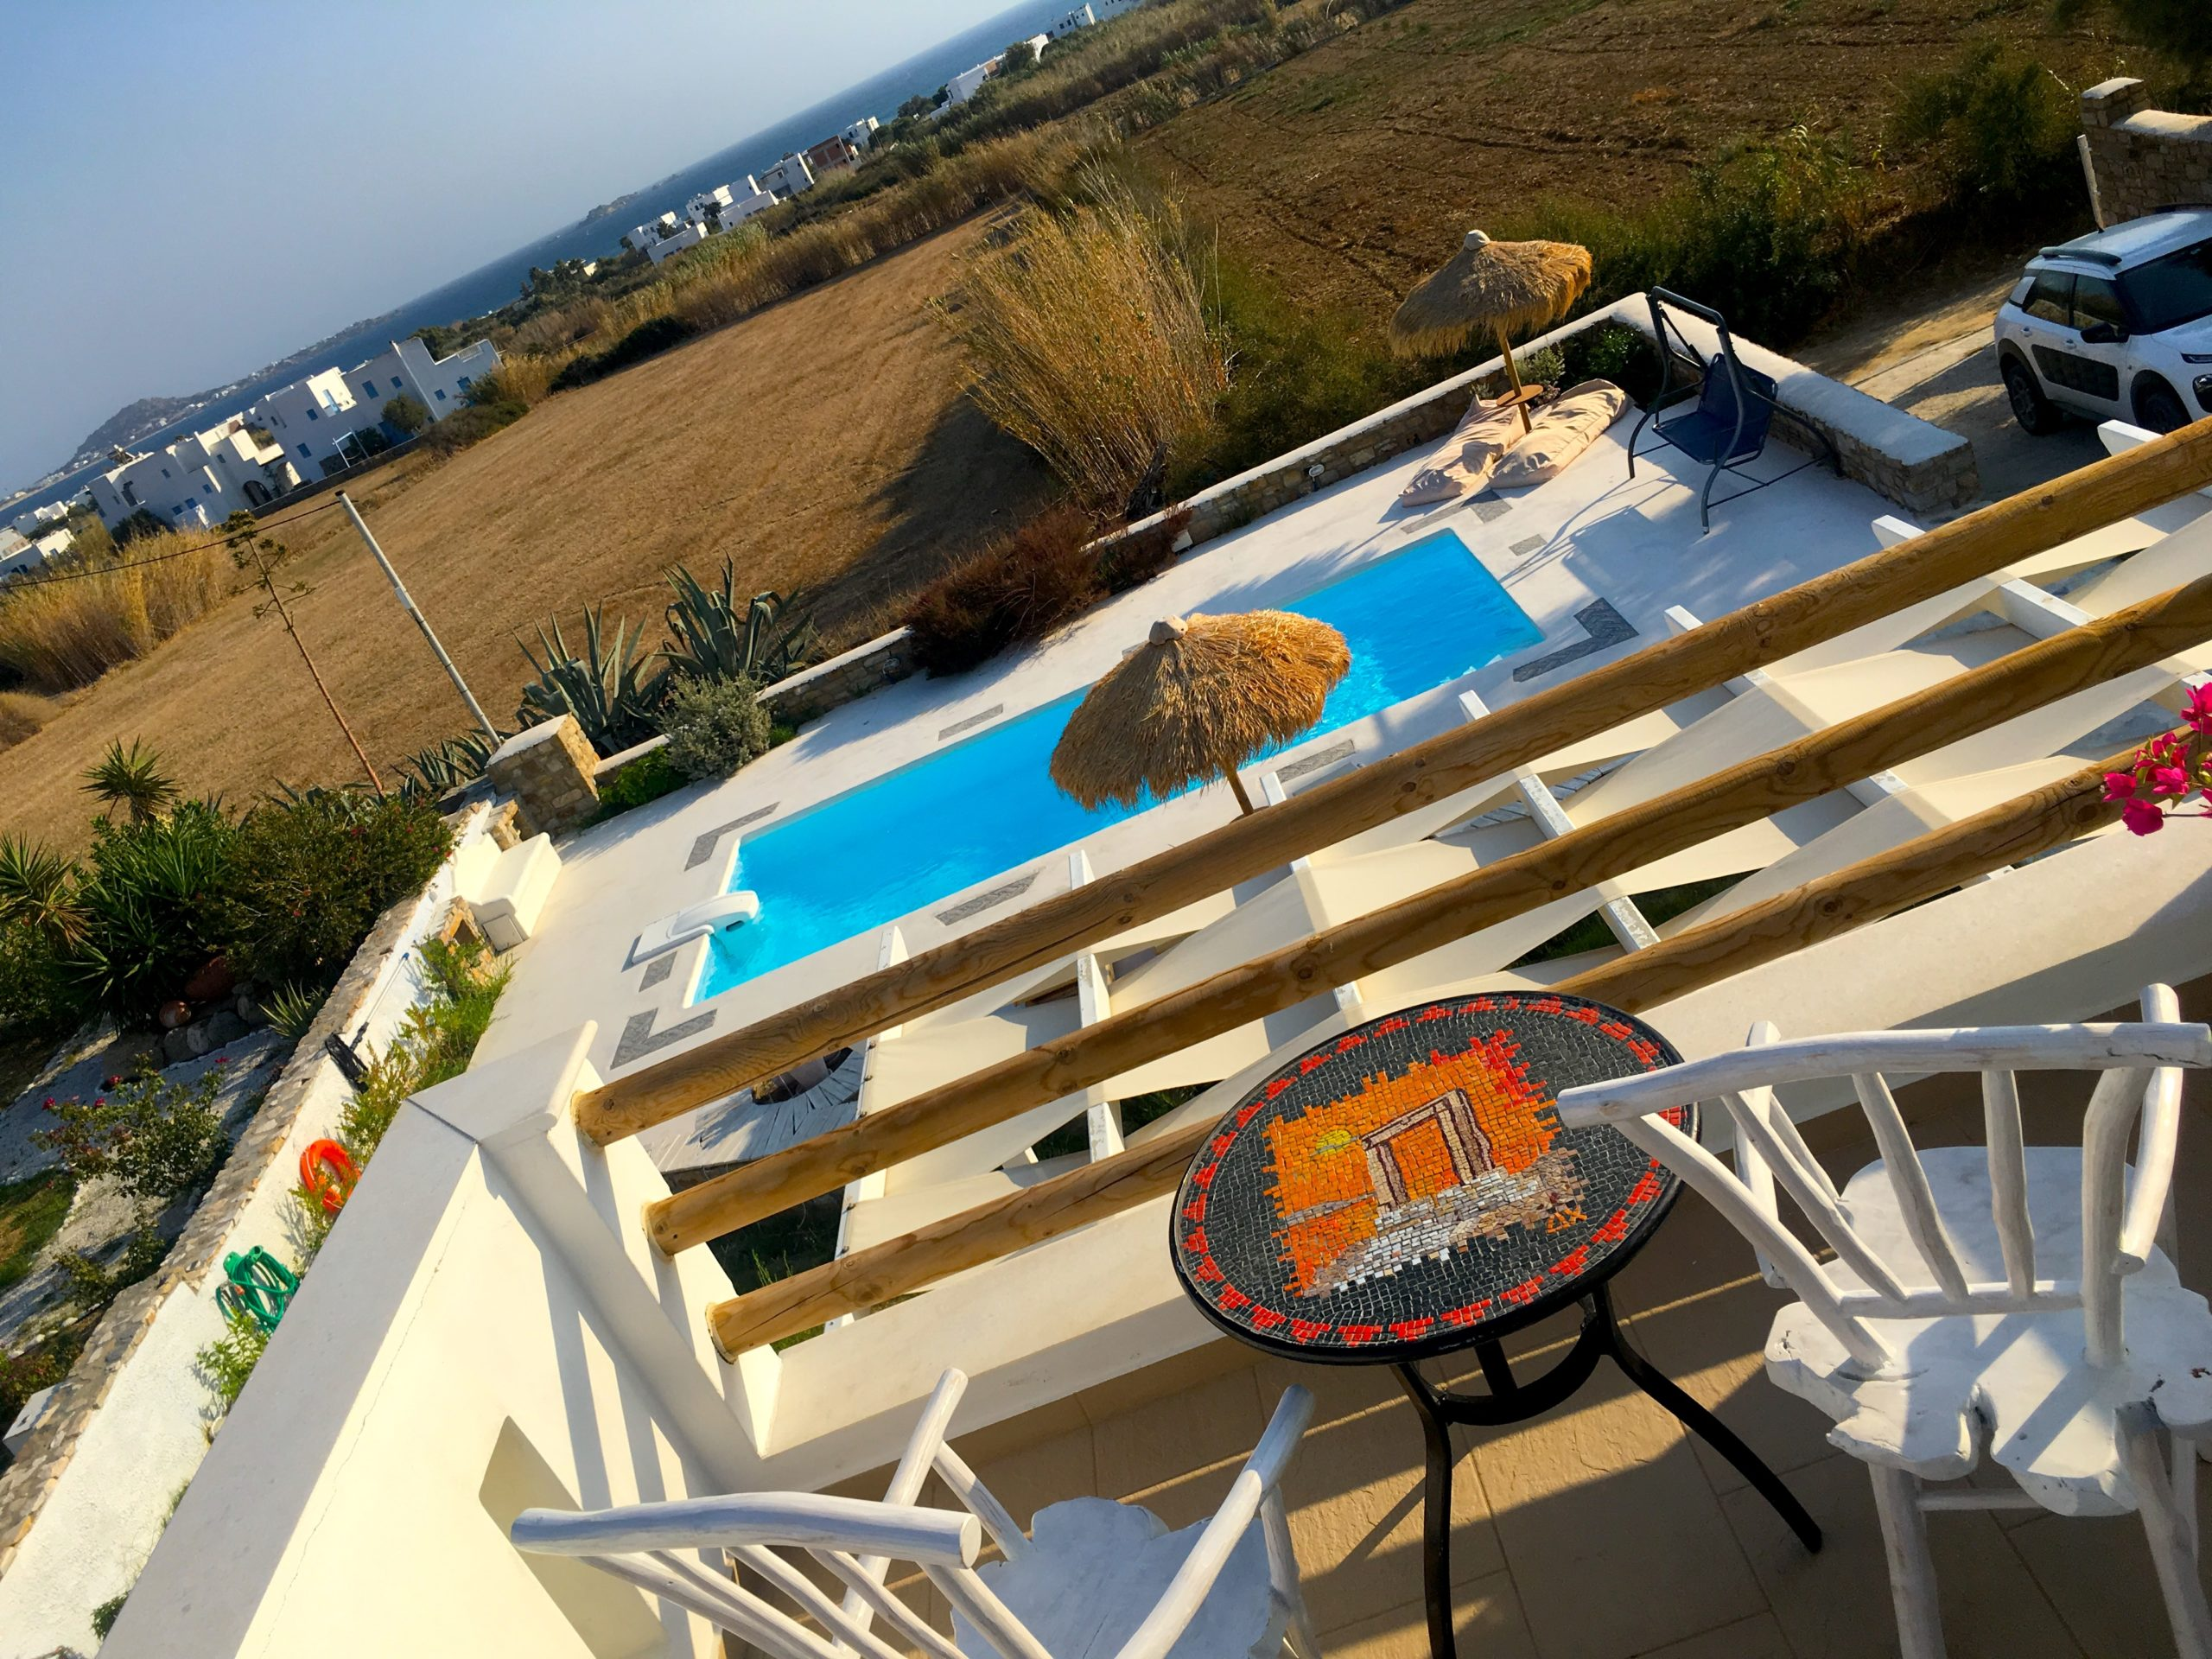 AirBnb home with pool on Plaka Beach in Naxos Greece